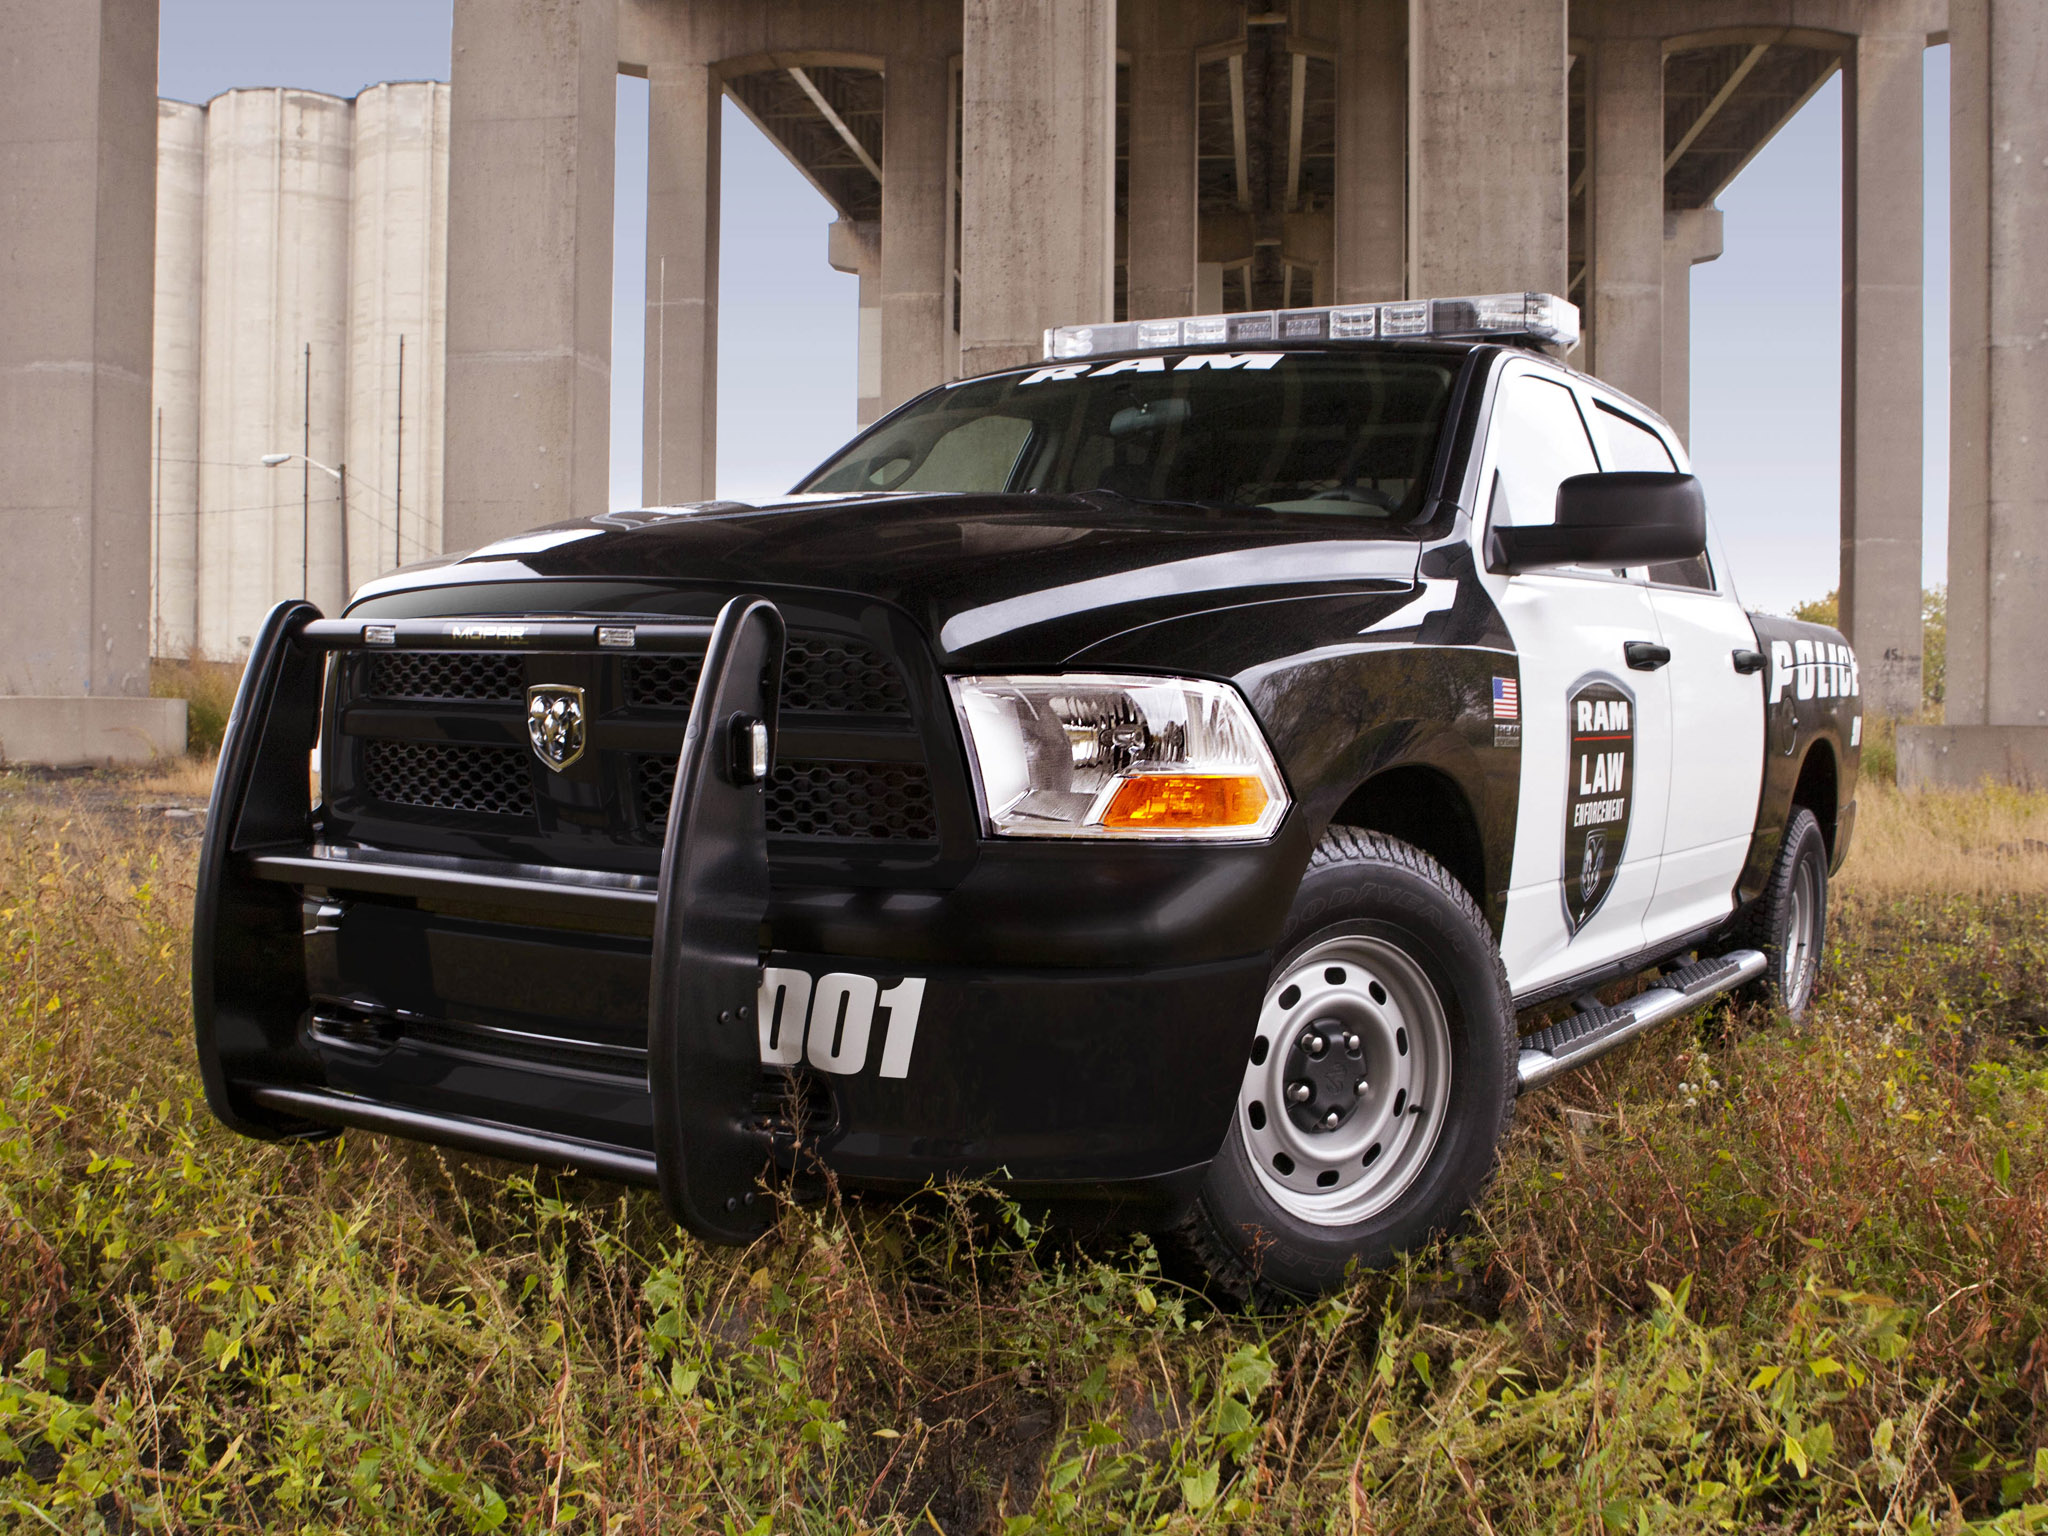 2011 dodge ram 1500 crew cab police truck w wallpaper 2048x1536 108105 wallpaperup. Black Bedroom Furniture Sets. Home Design Ideas